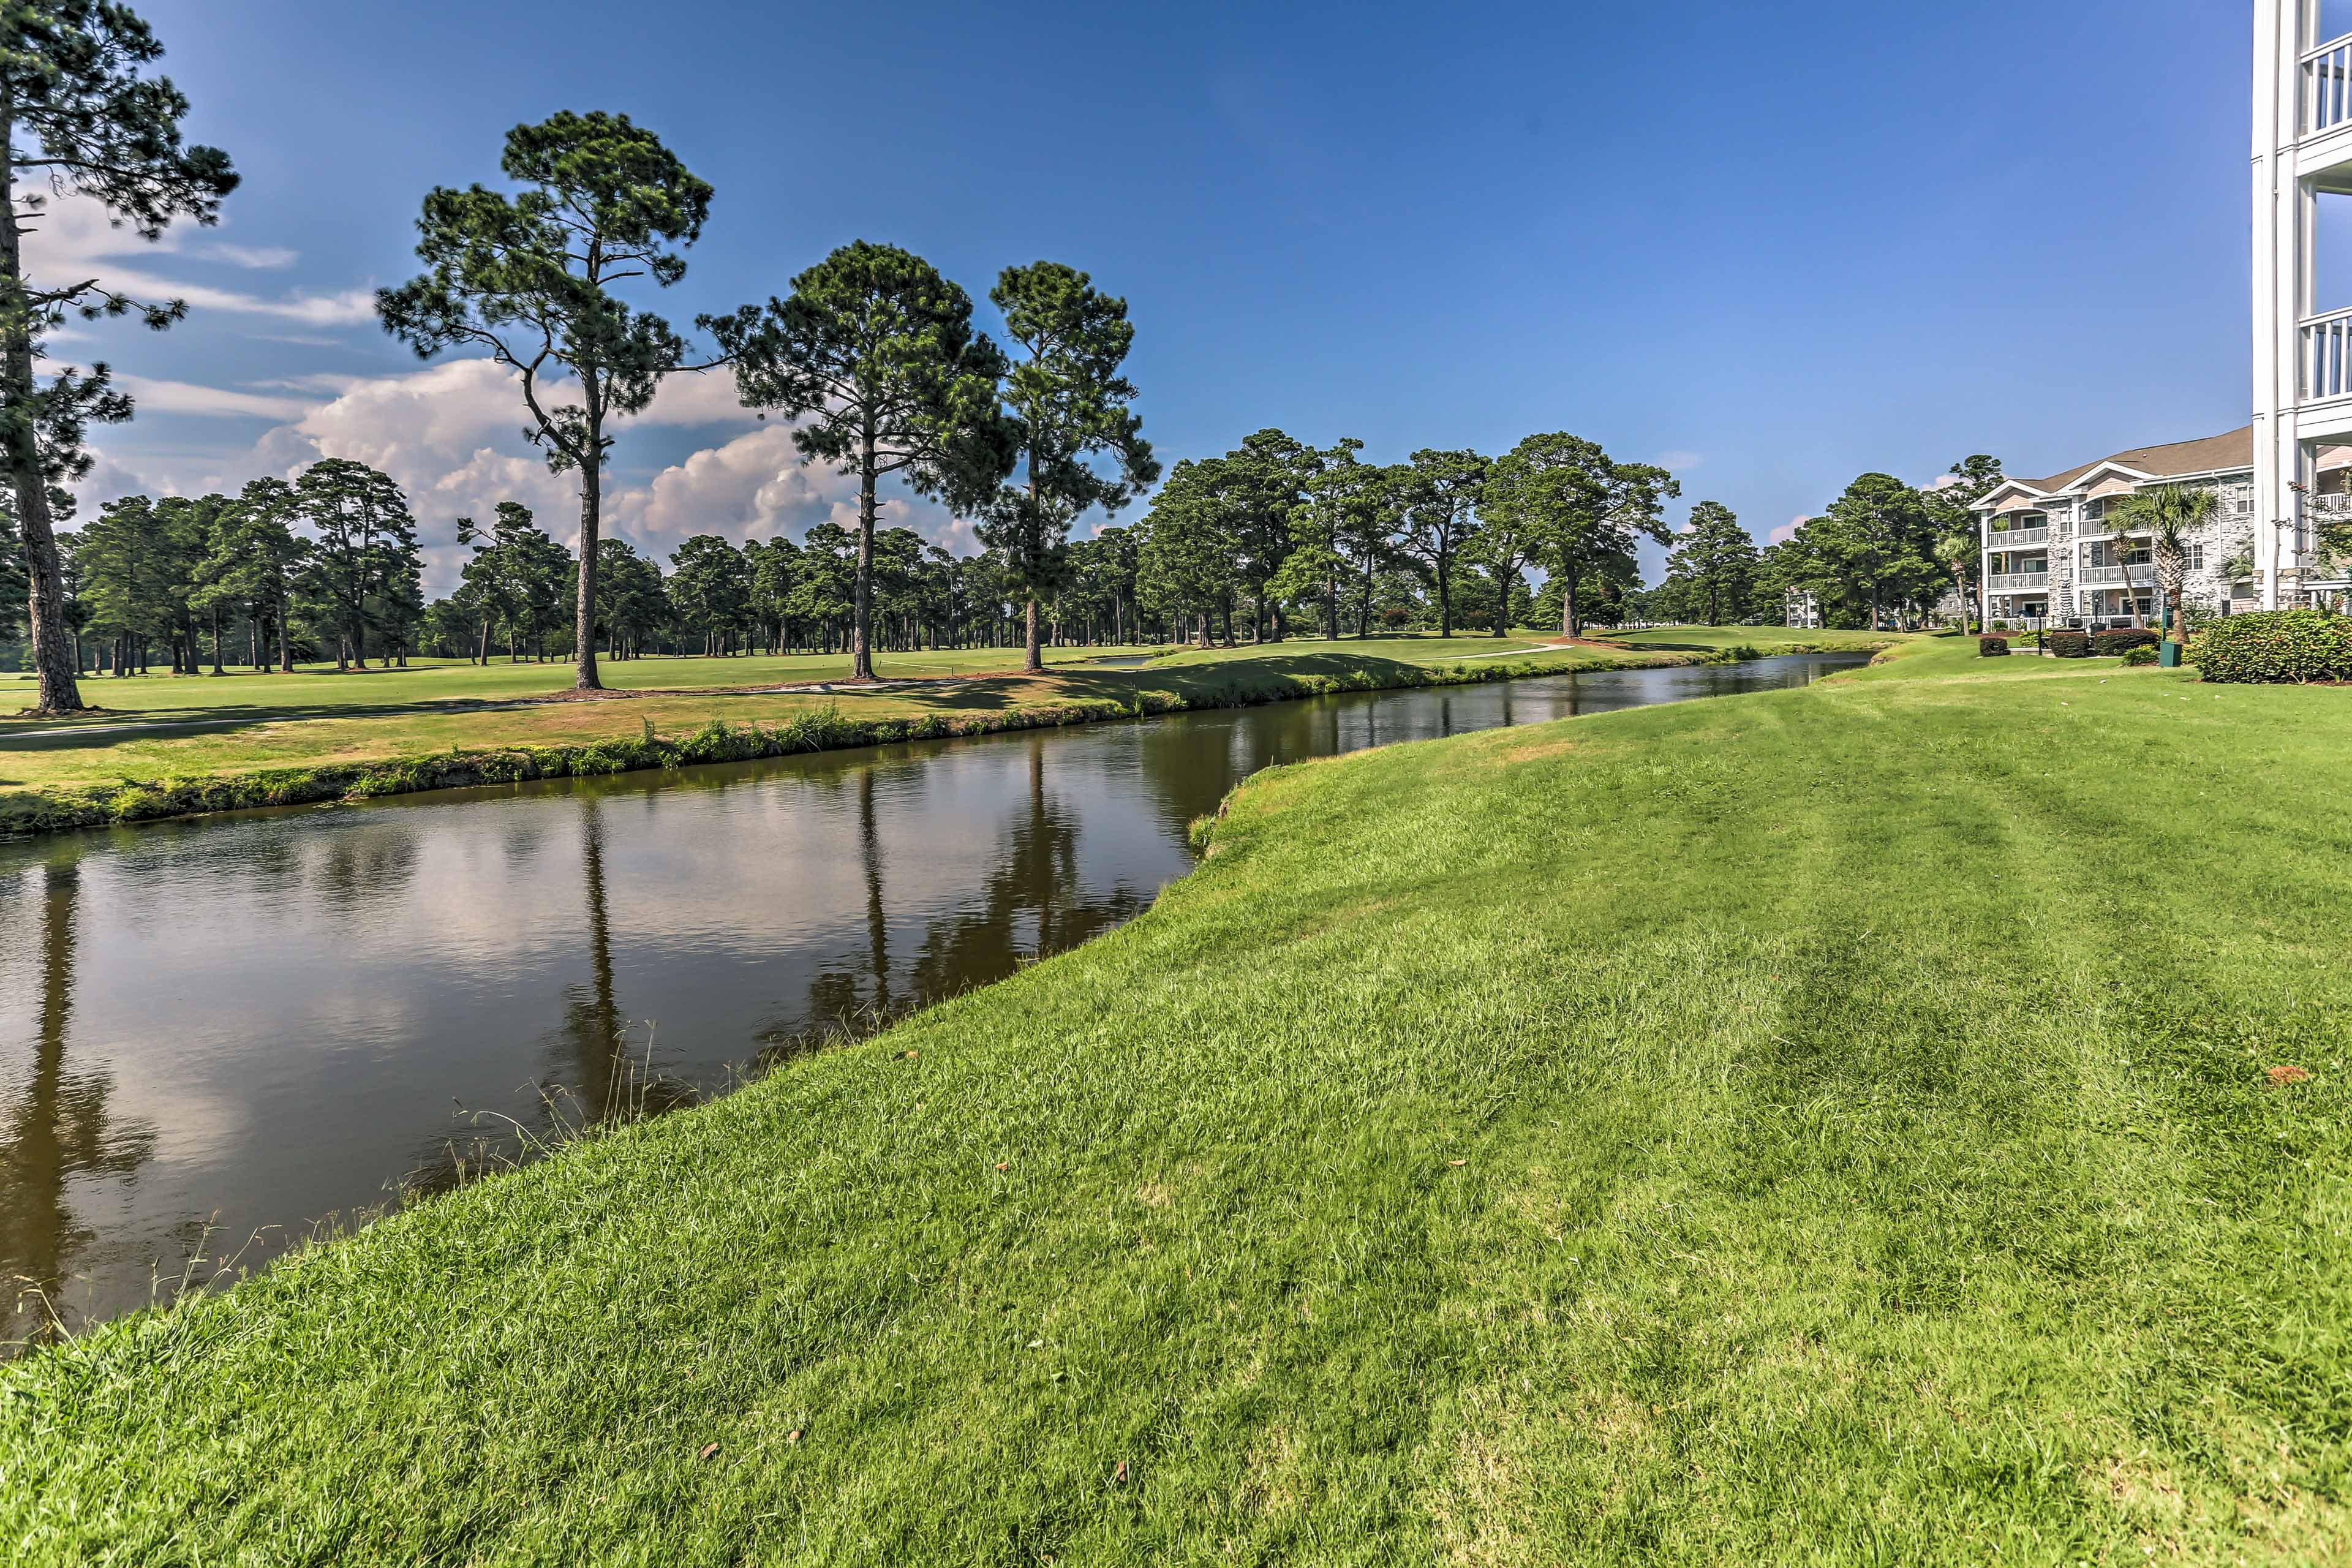 The community is situated across from a golf course.